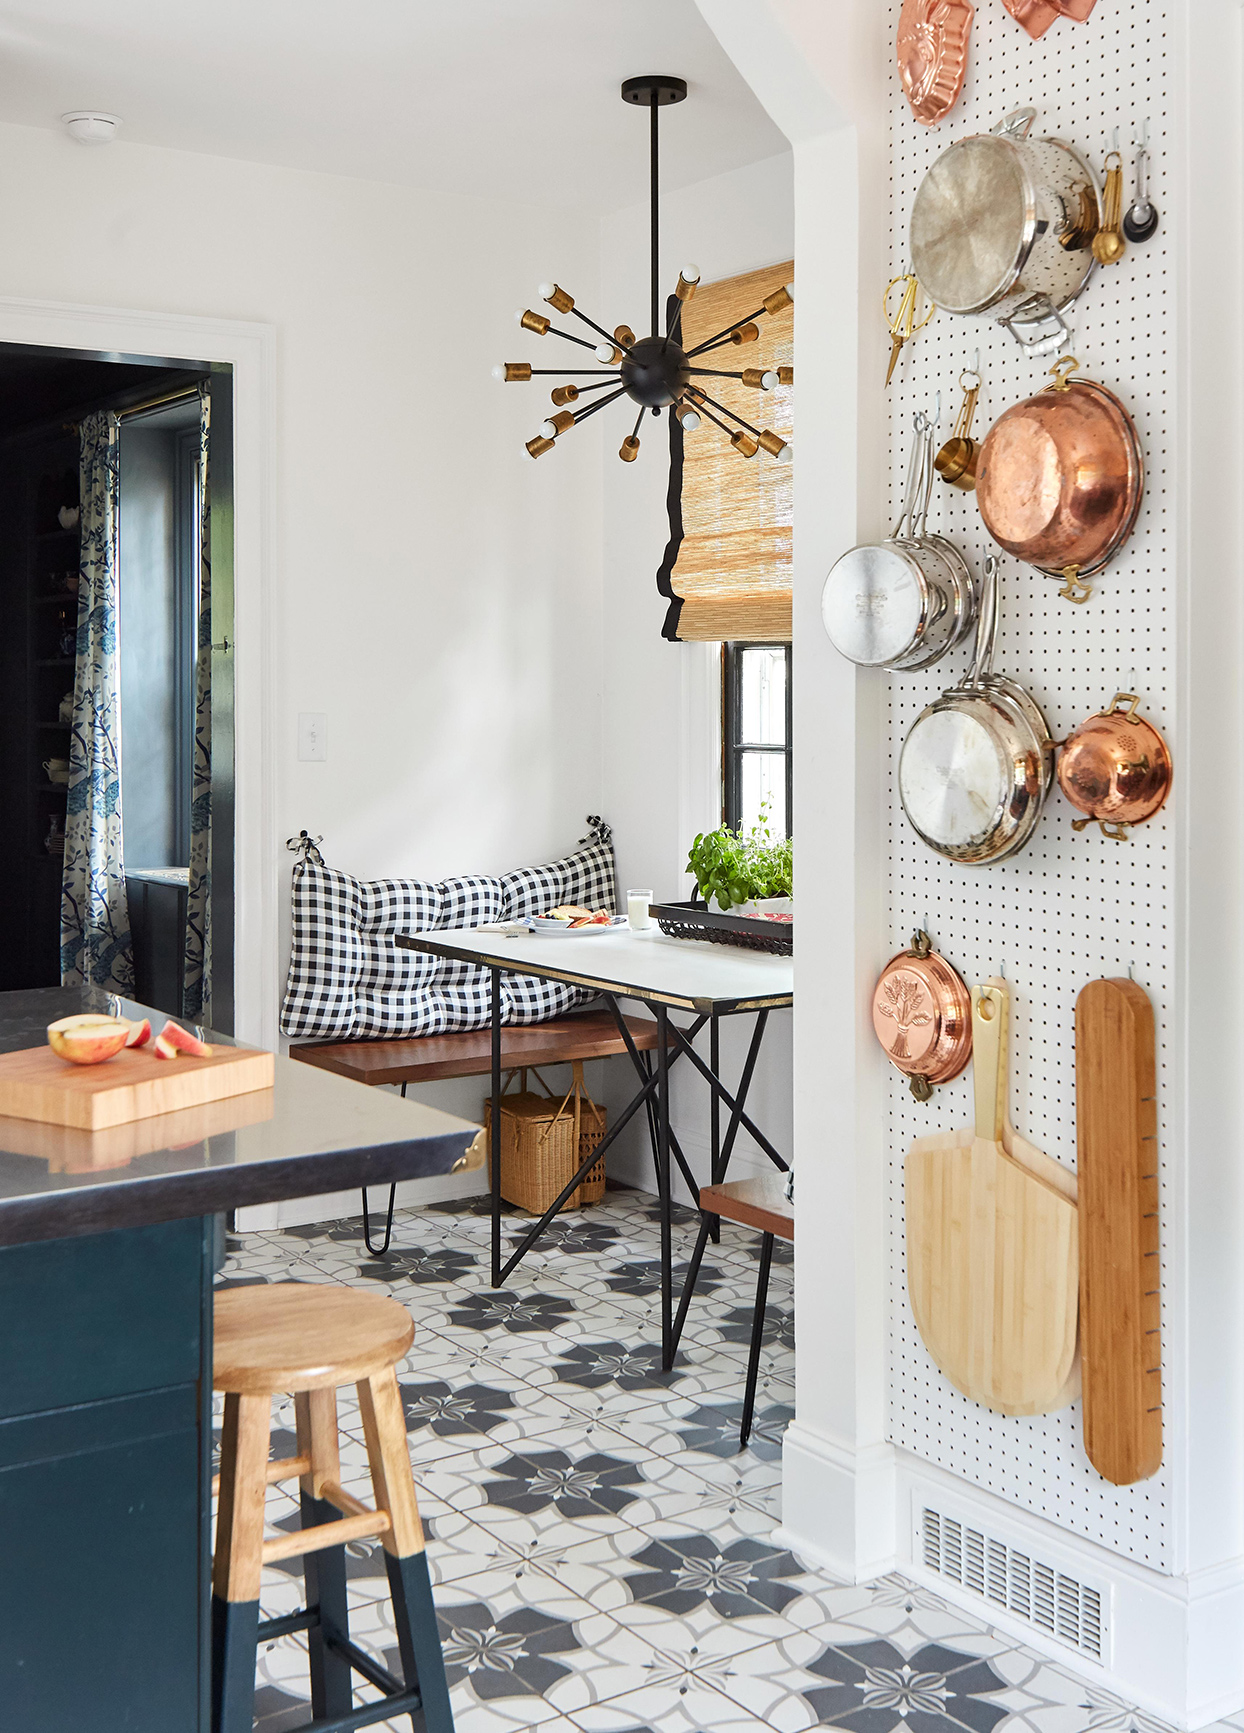 Thrifted Finds and Clever Design Hacks Put the Polish on This Old Colonial